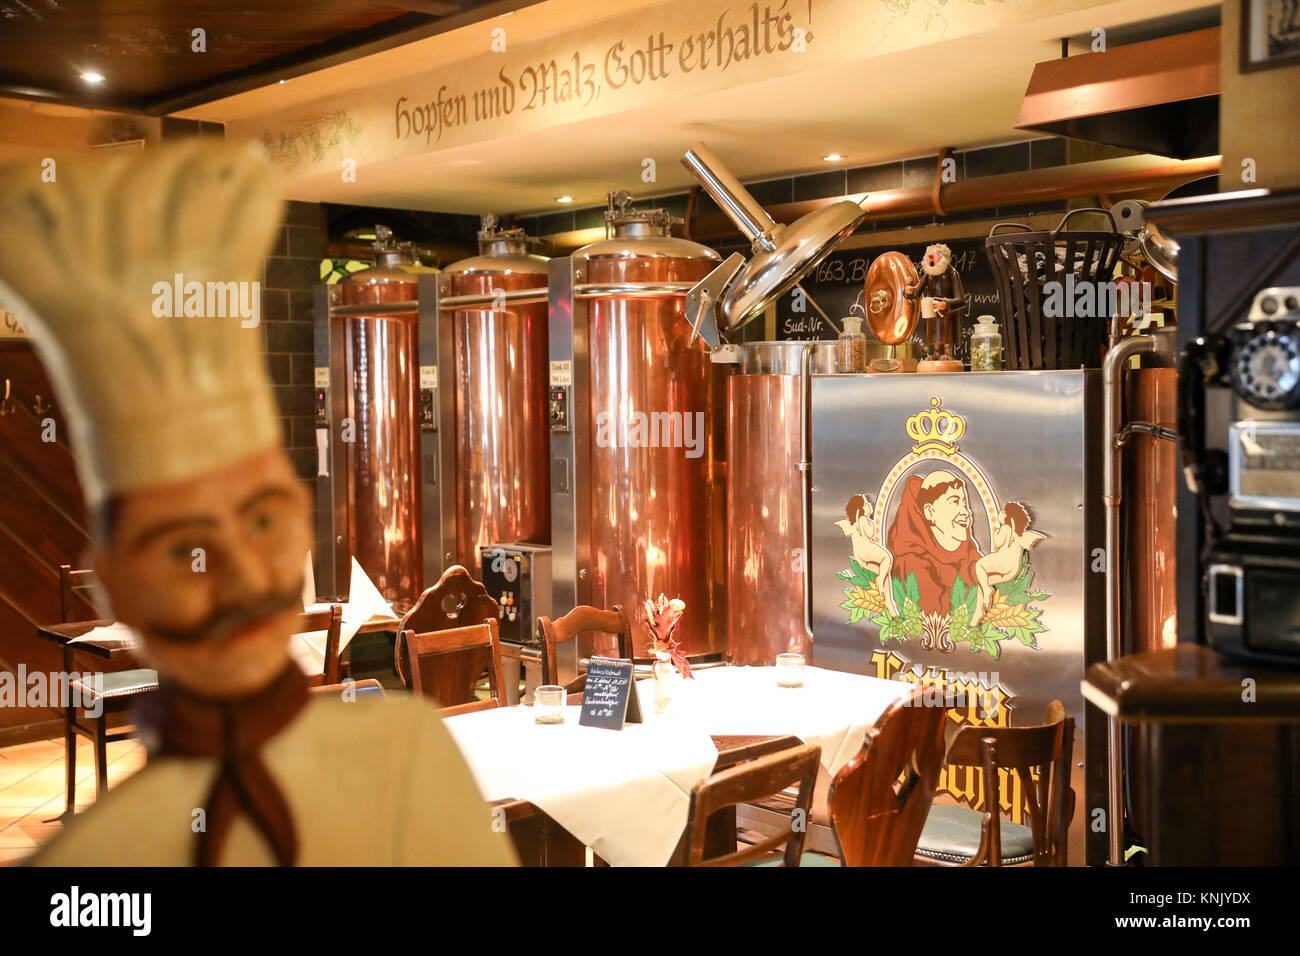 Blauer Engel Restaurant Aue Germany 16th Nov 2017 View Of The Brewery Of The Hotel